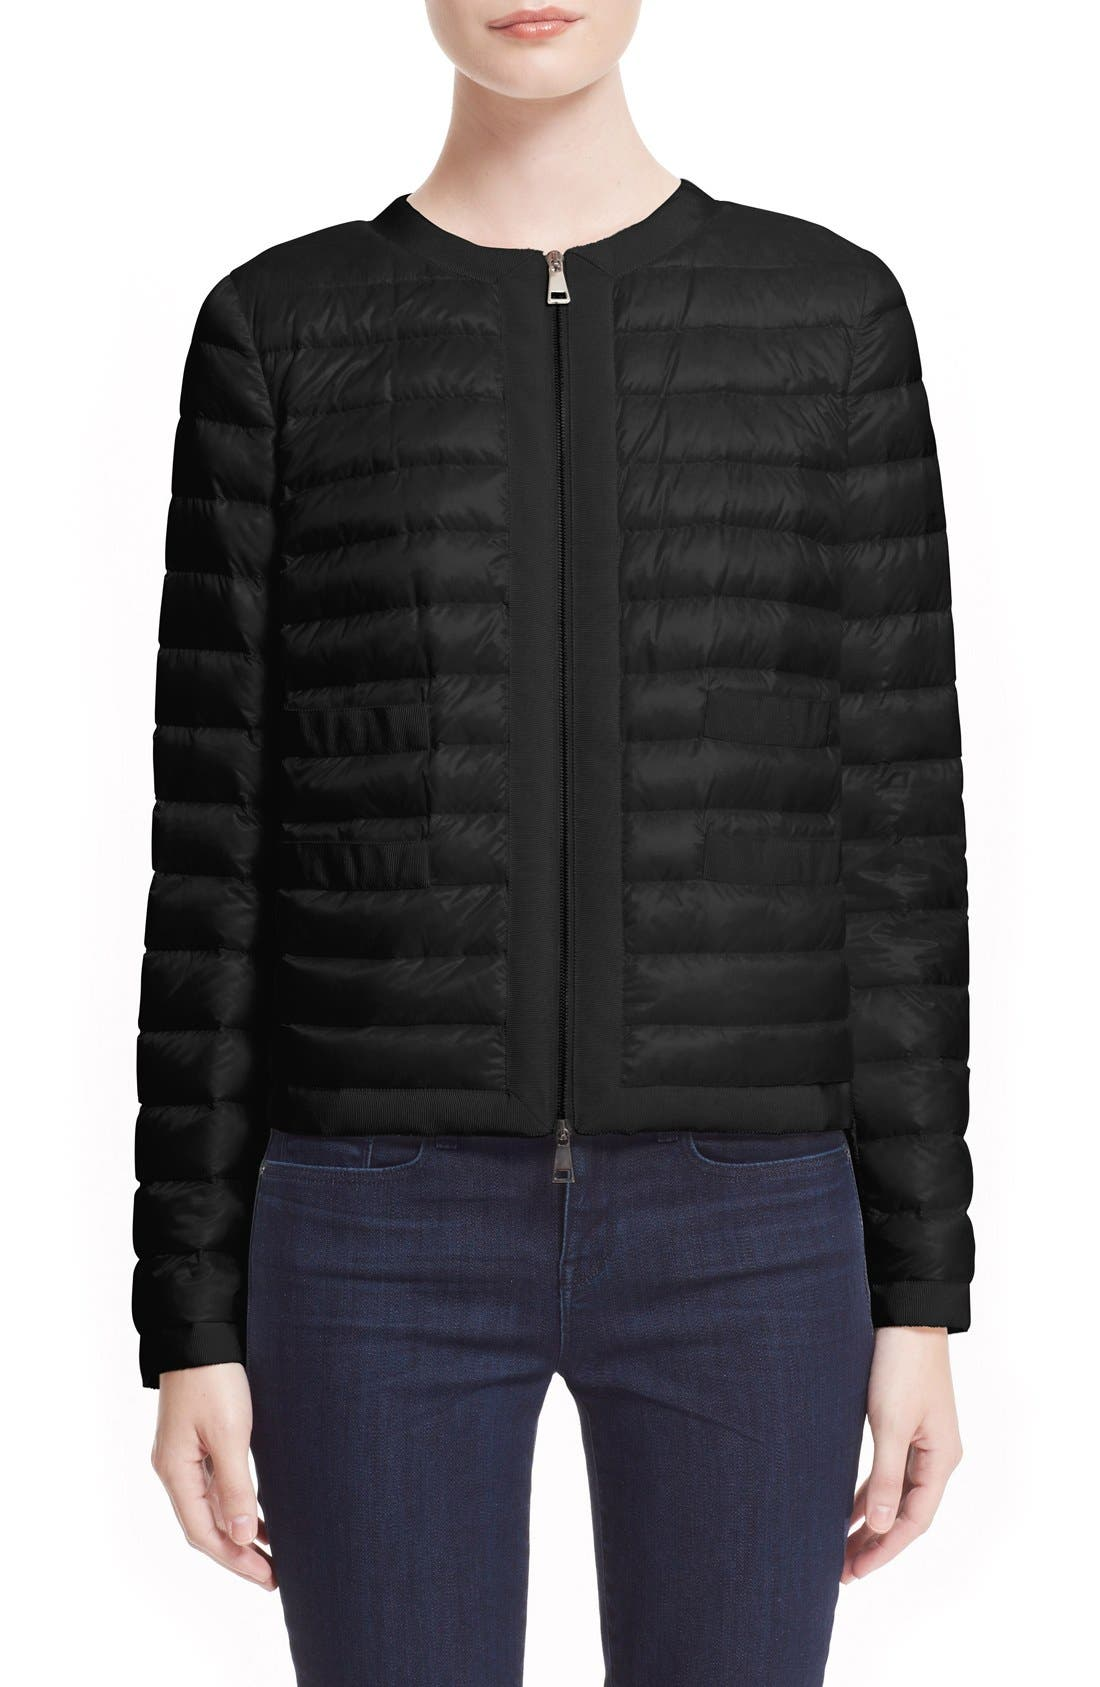 Moncler 'Alose' Water Resistant Short Puffer Jacket